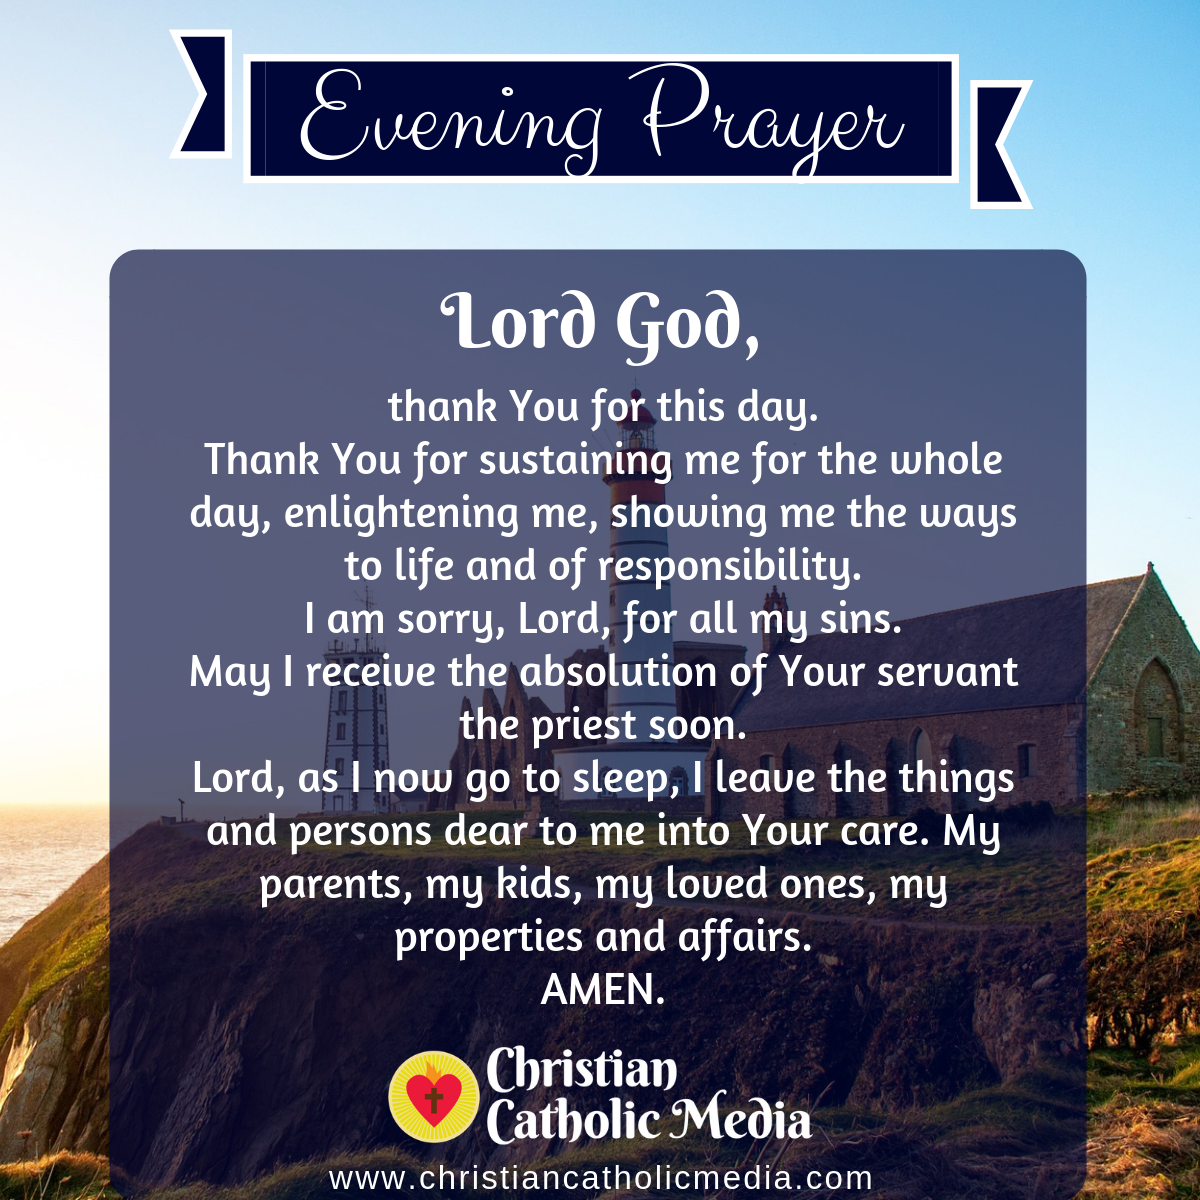 Evening Prayer Catholic Friday 1-24-2020